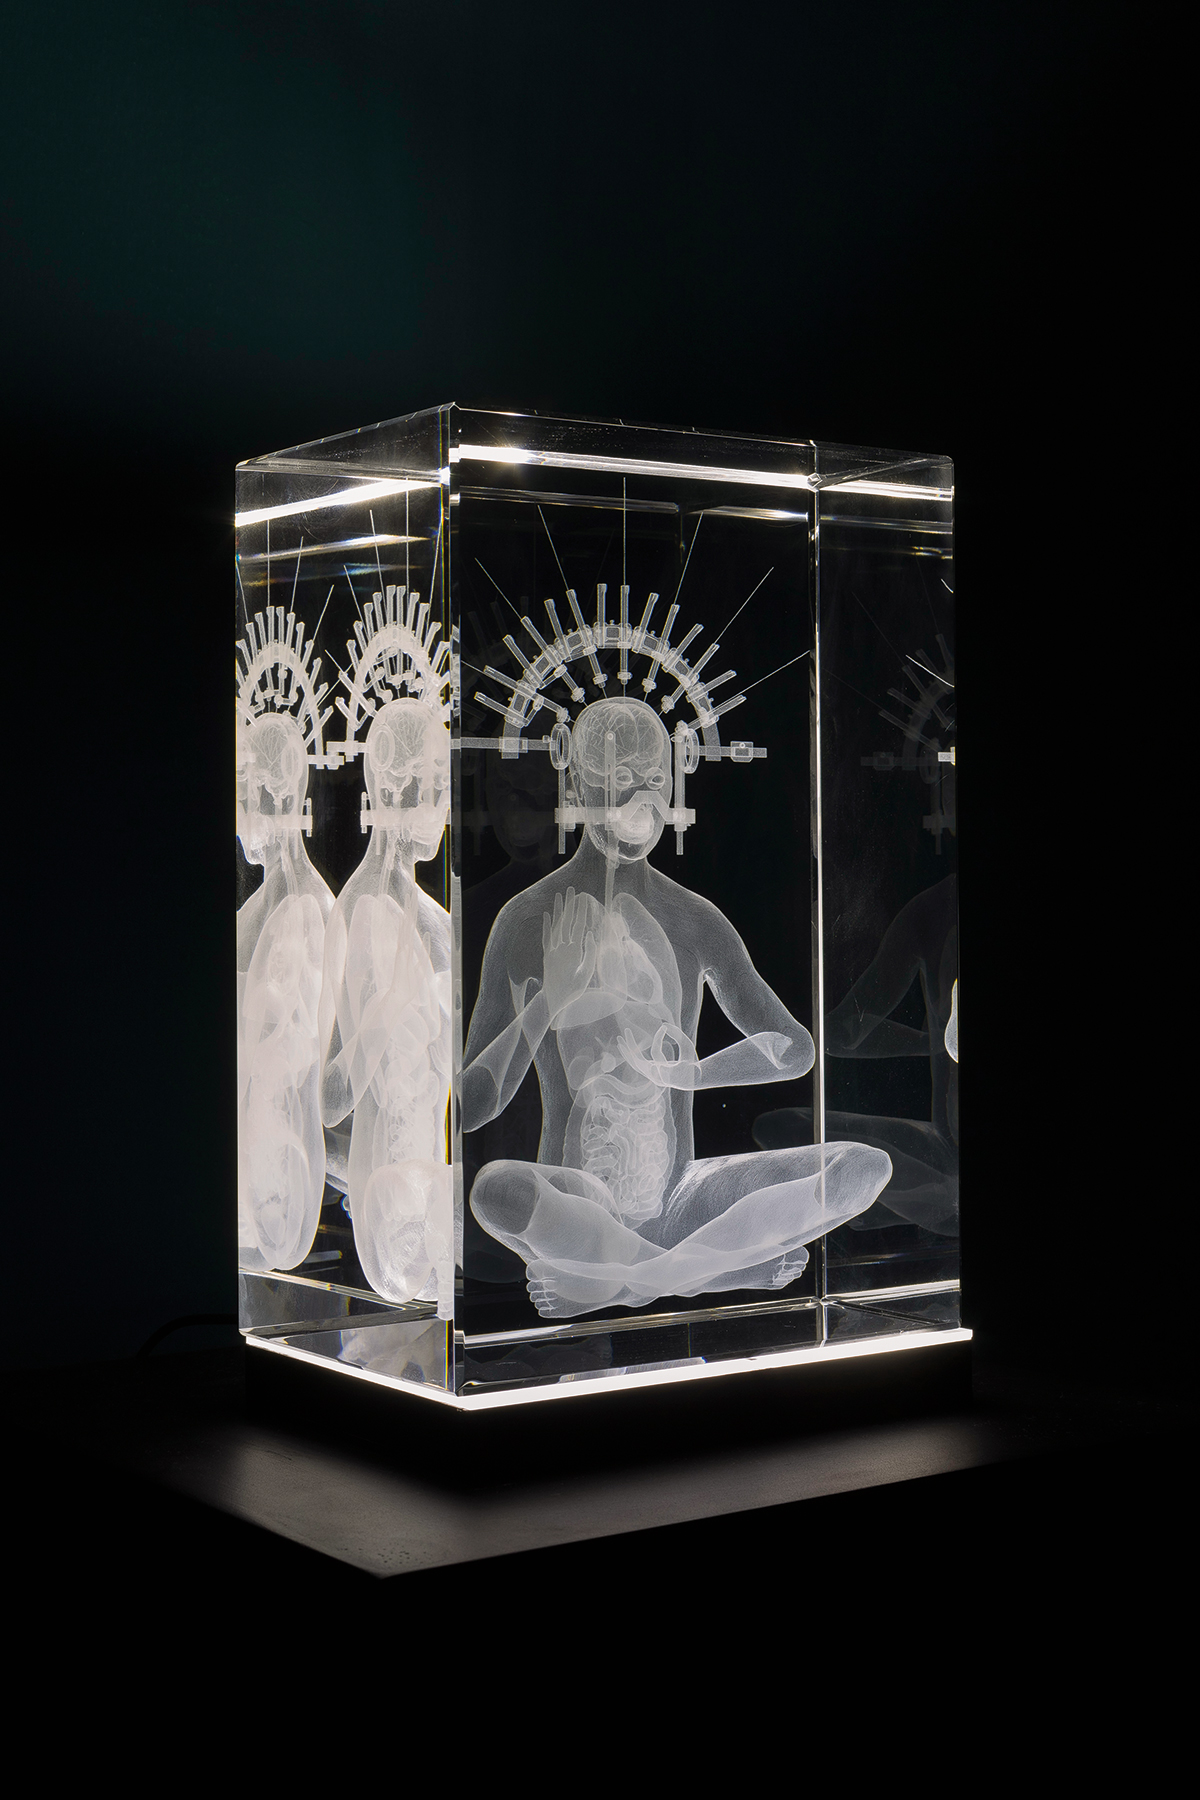 A person in a glass cube.